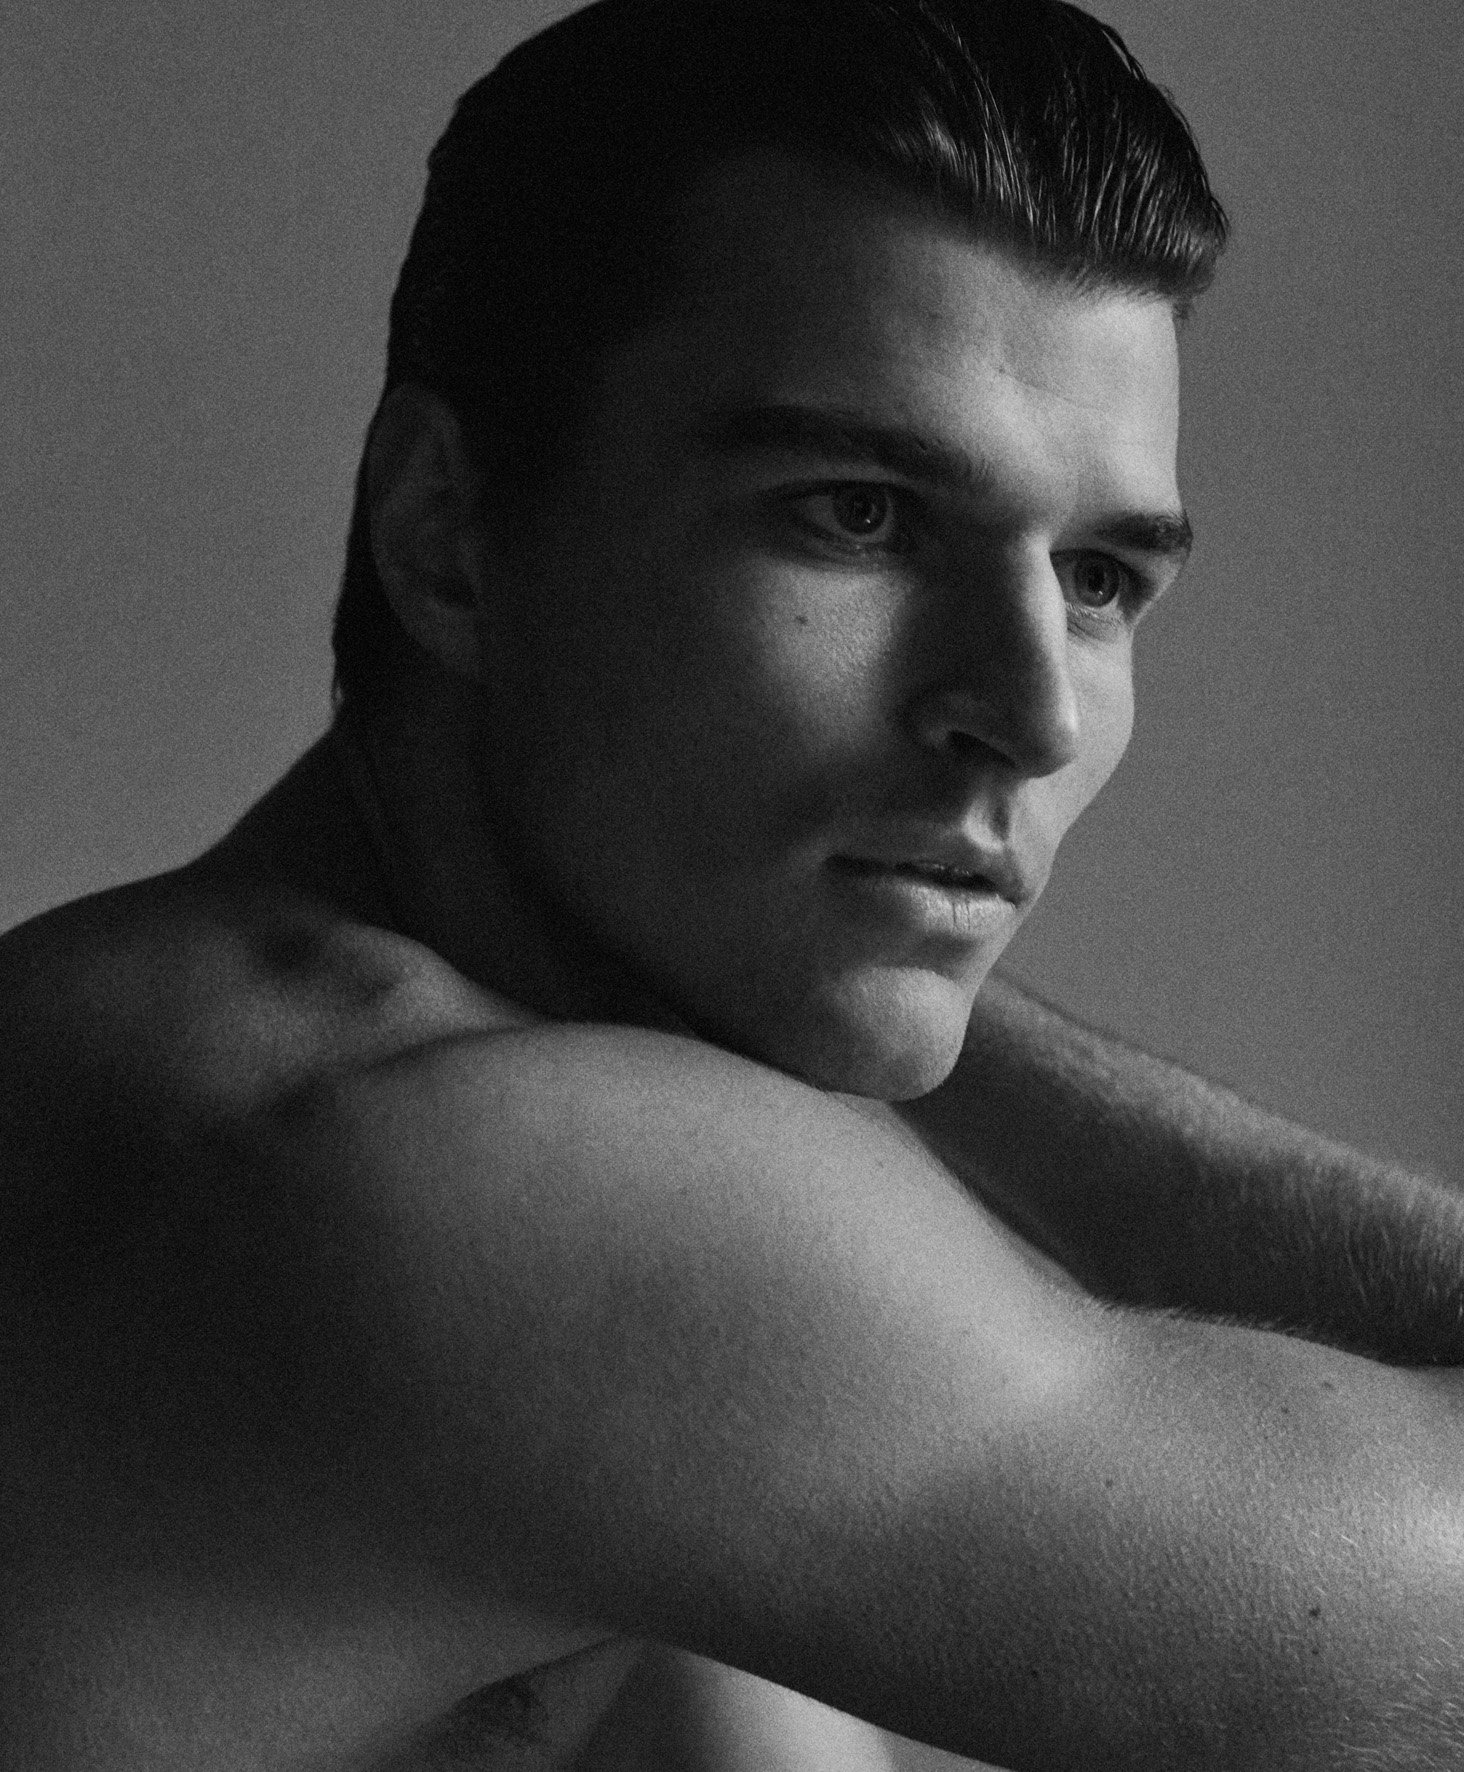 Arran Sly Unsigned Group Top Model cesar perin